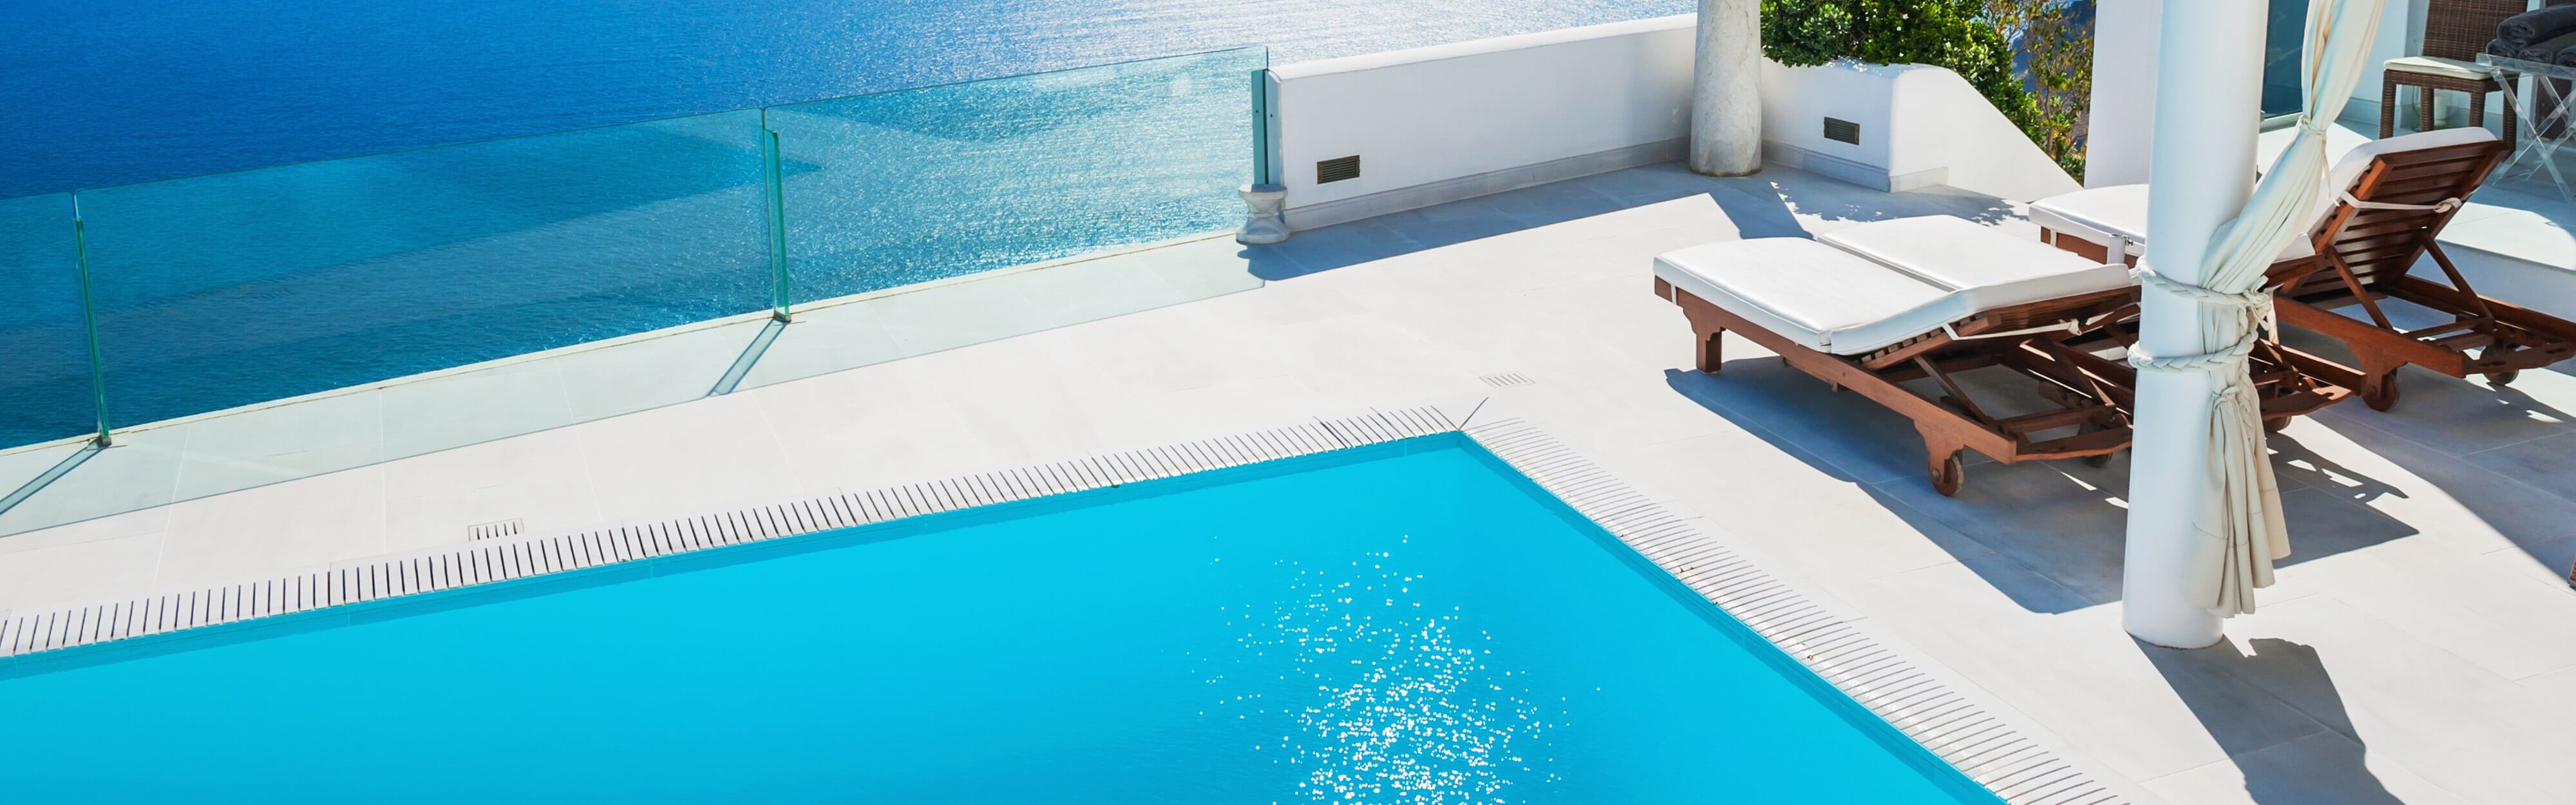 Online Bookings Increased by 33% with Integrated UX for a Leading Luxury Resort